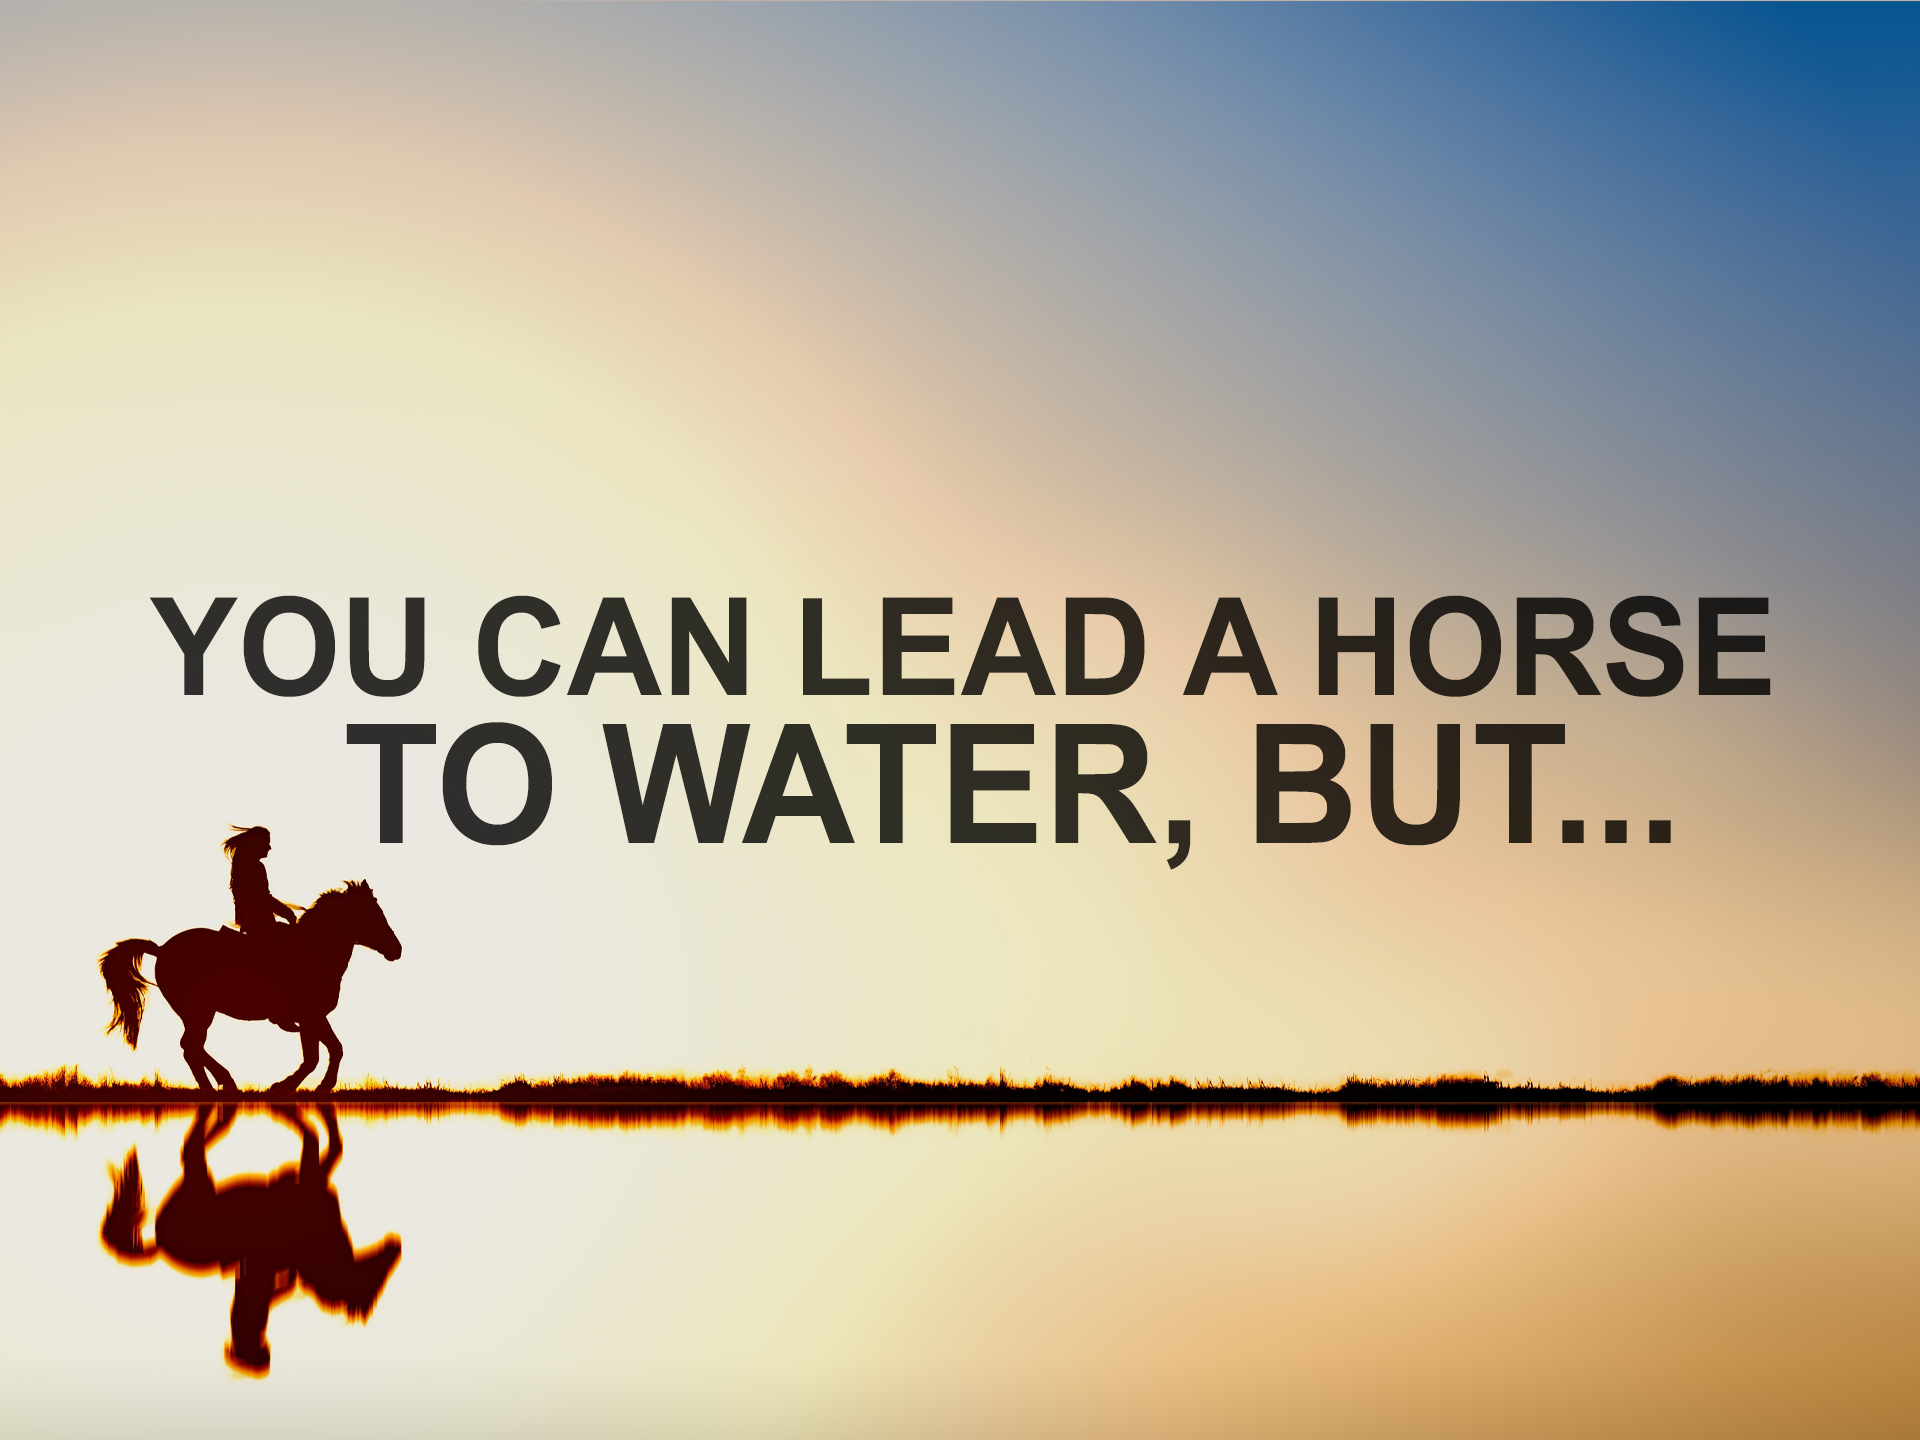 030319 You can lead a horse to water but.png